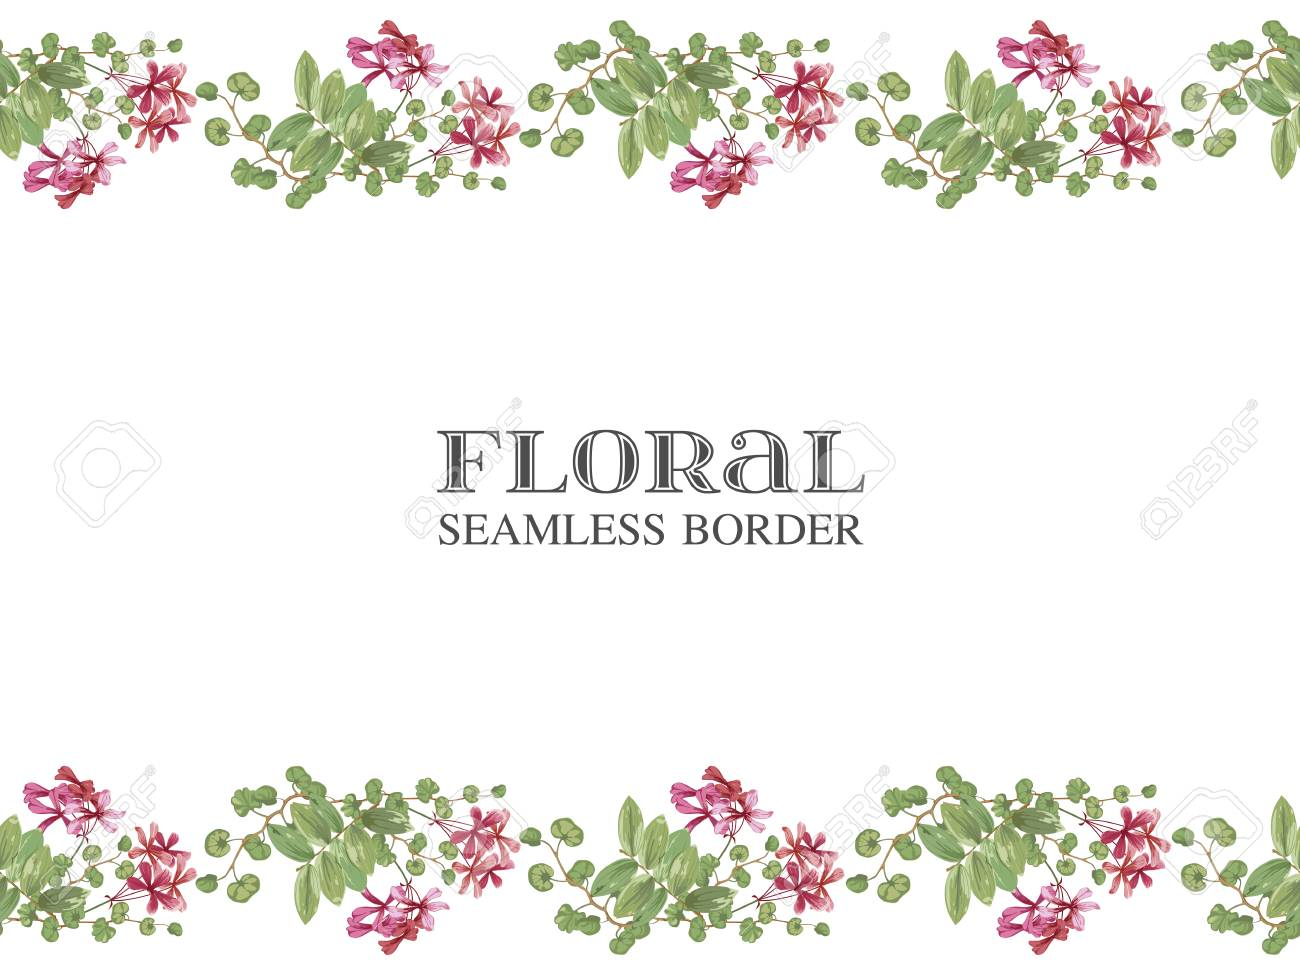 Border of wild tropical flowers and leaves. Linear horizontal seamless pattern on white. Vector floral background with blooming botanical motifs - 125271288